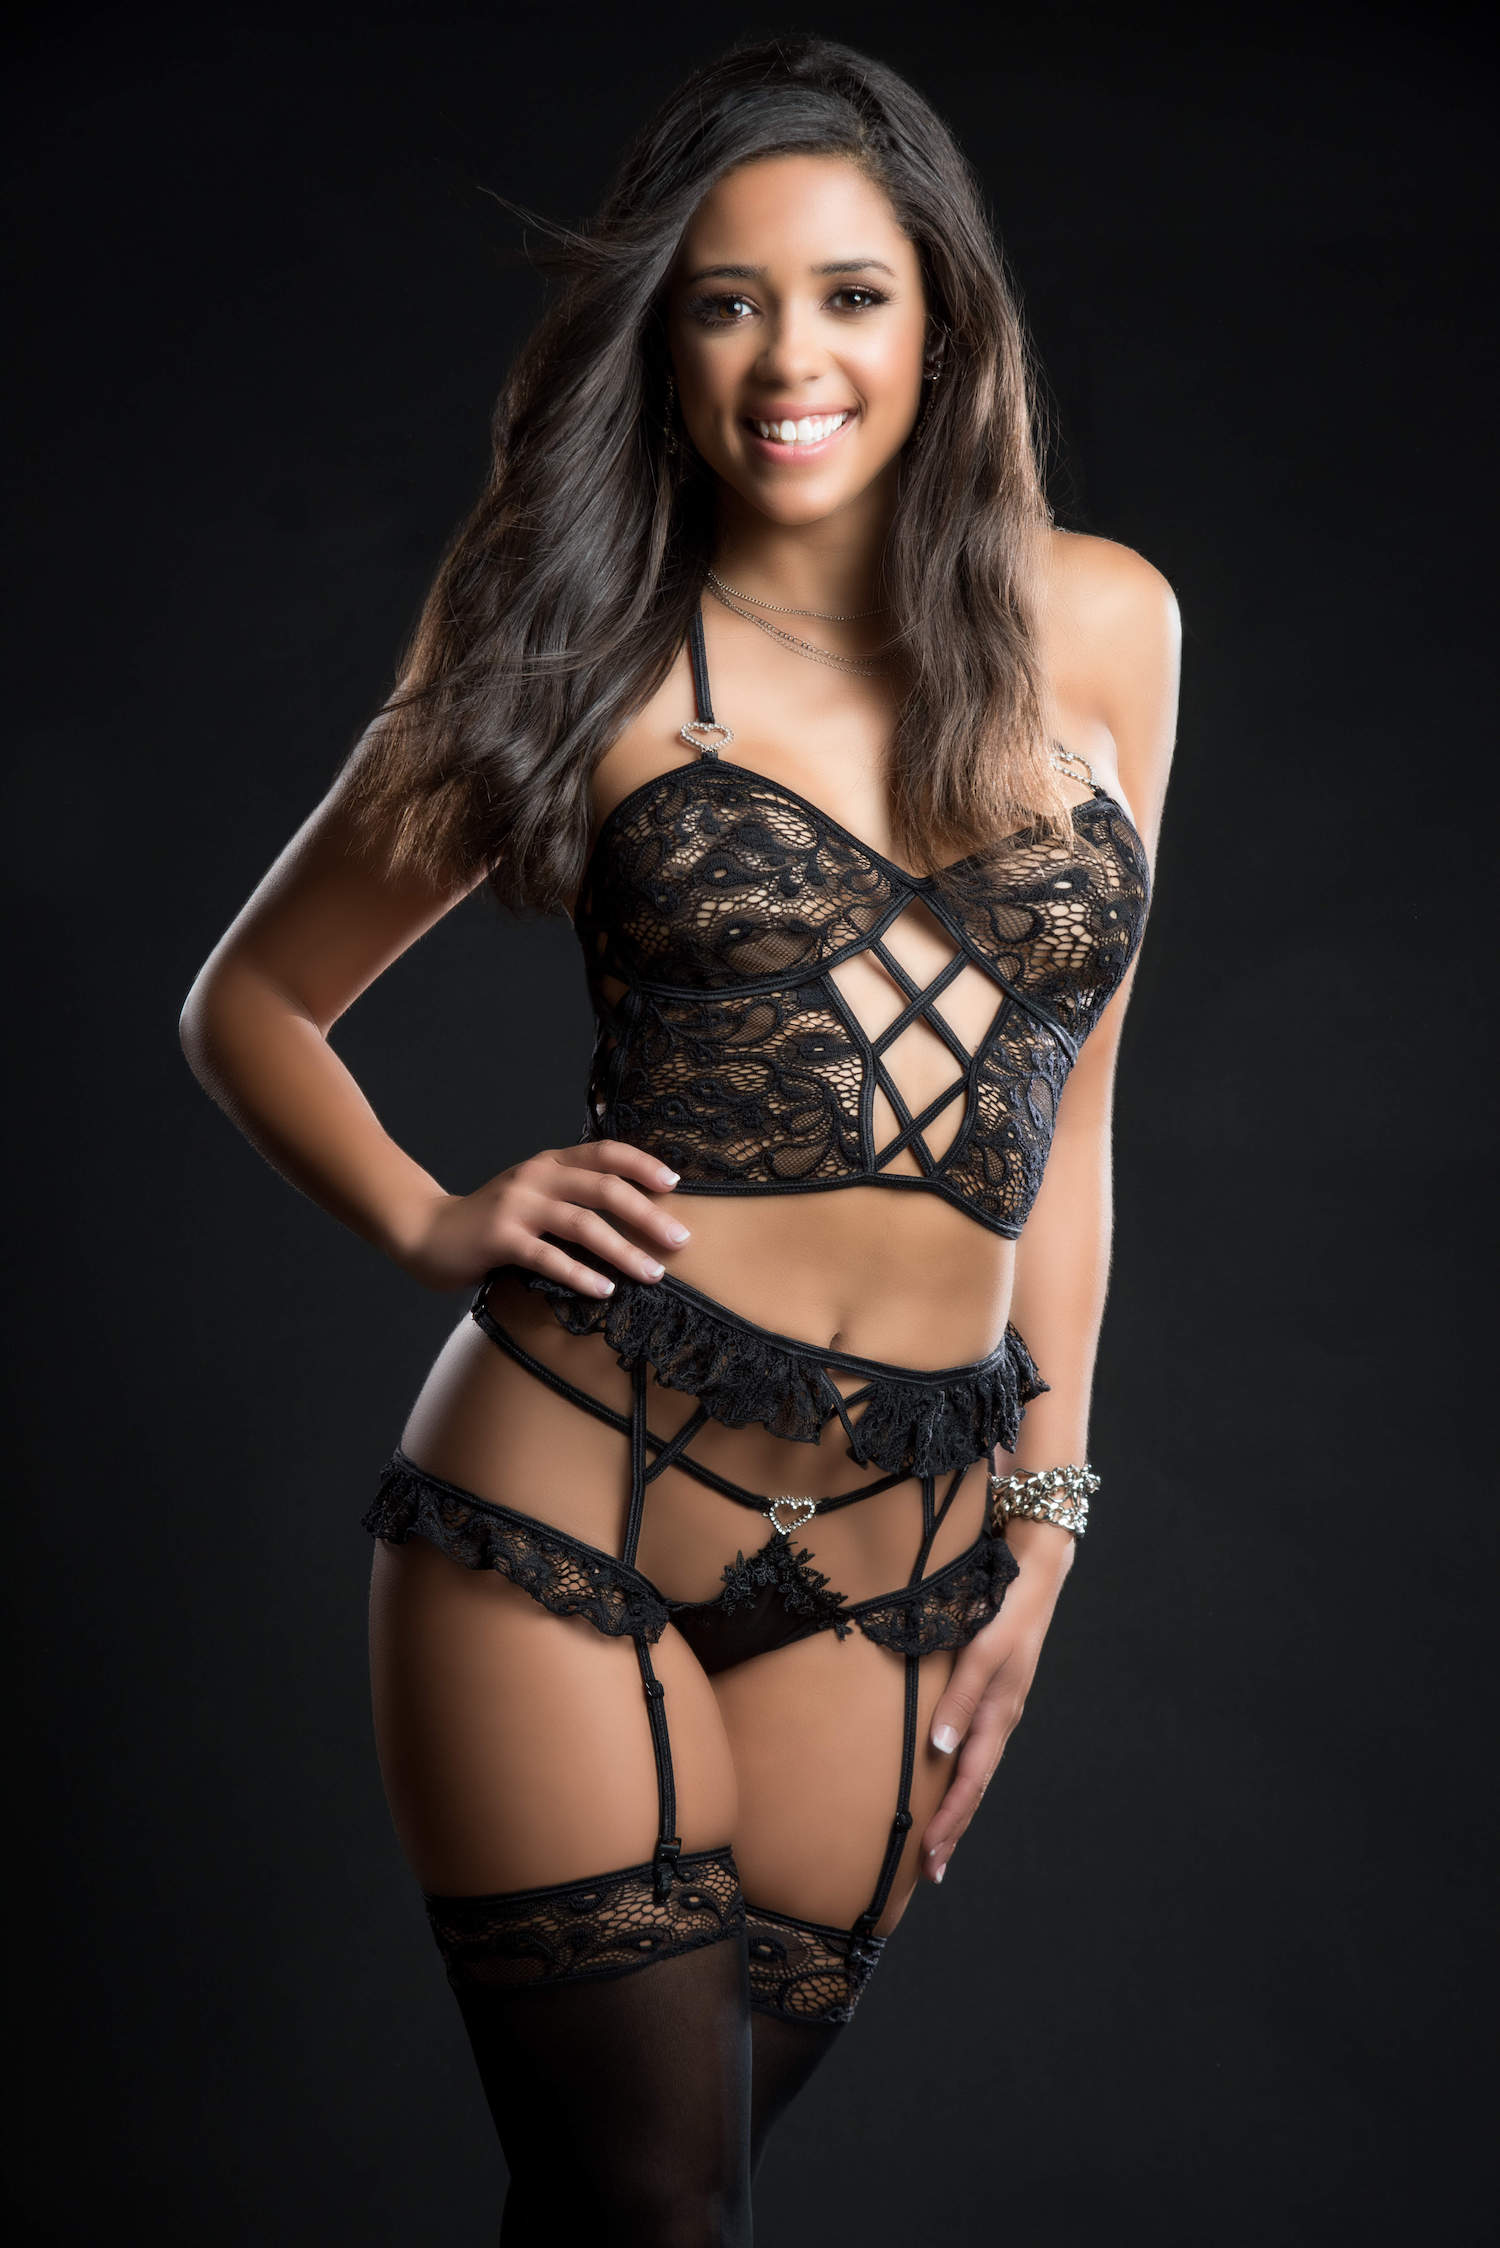 4pc Cami Top Lingerie Set With Ruffled Garter Belt and Stockings - One Size - Blackout